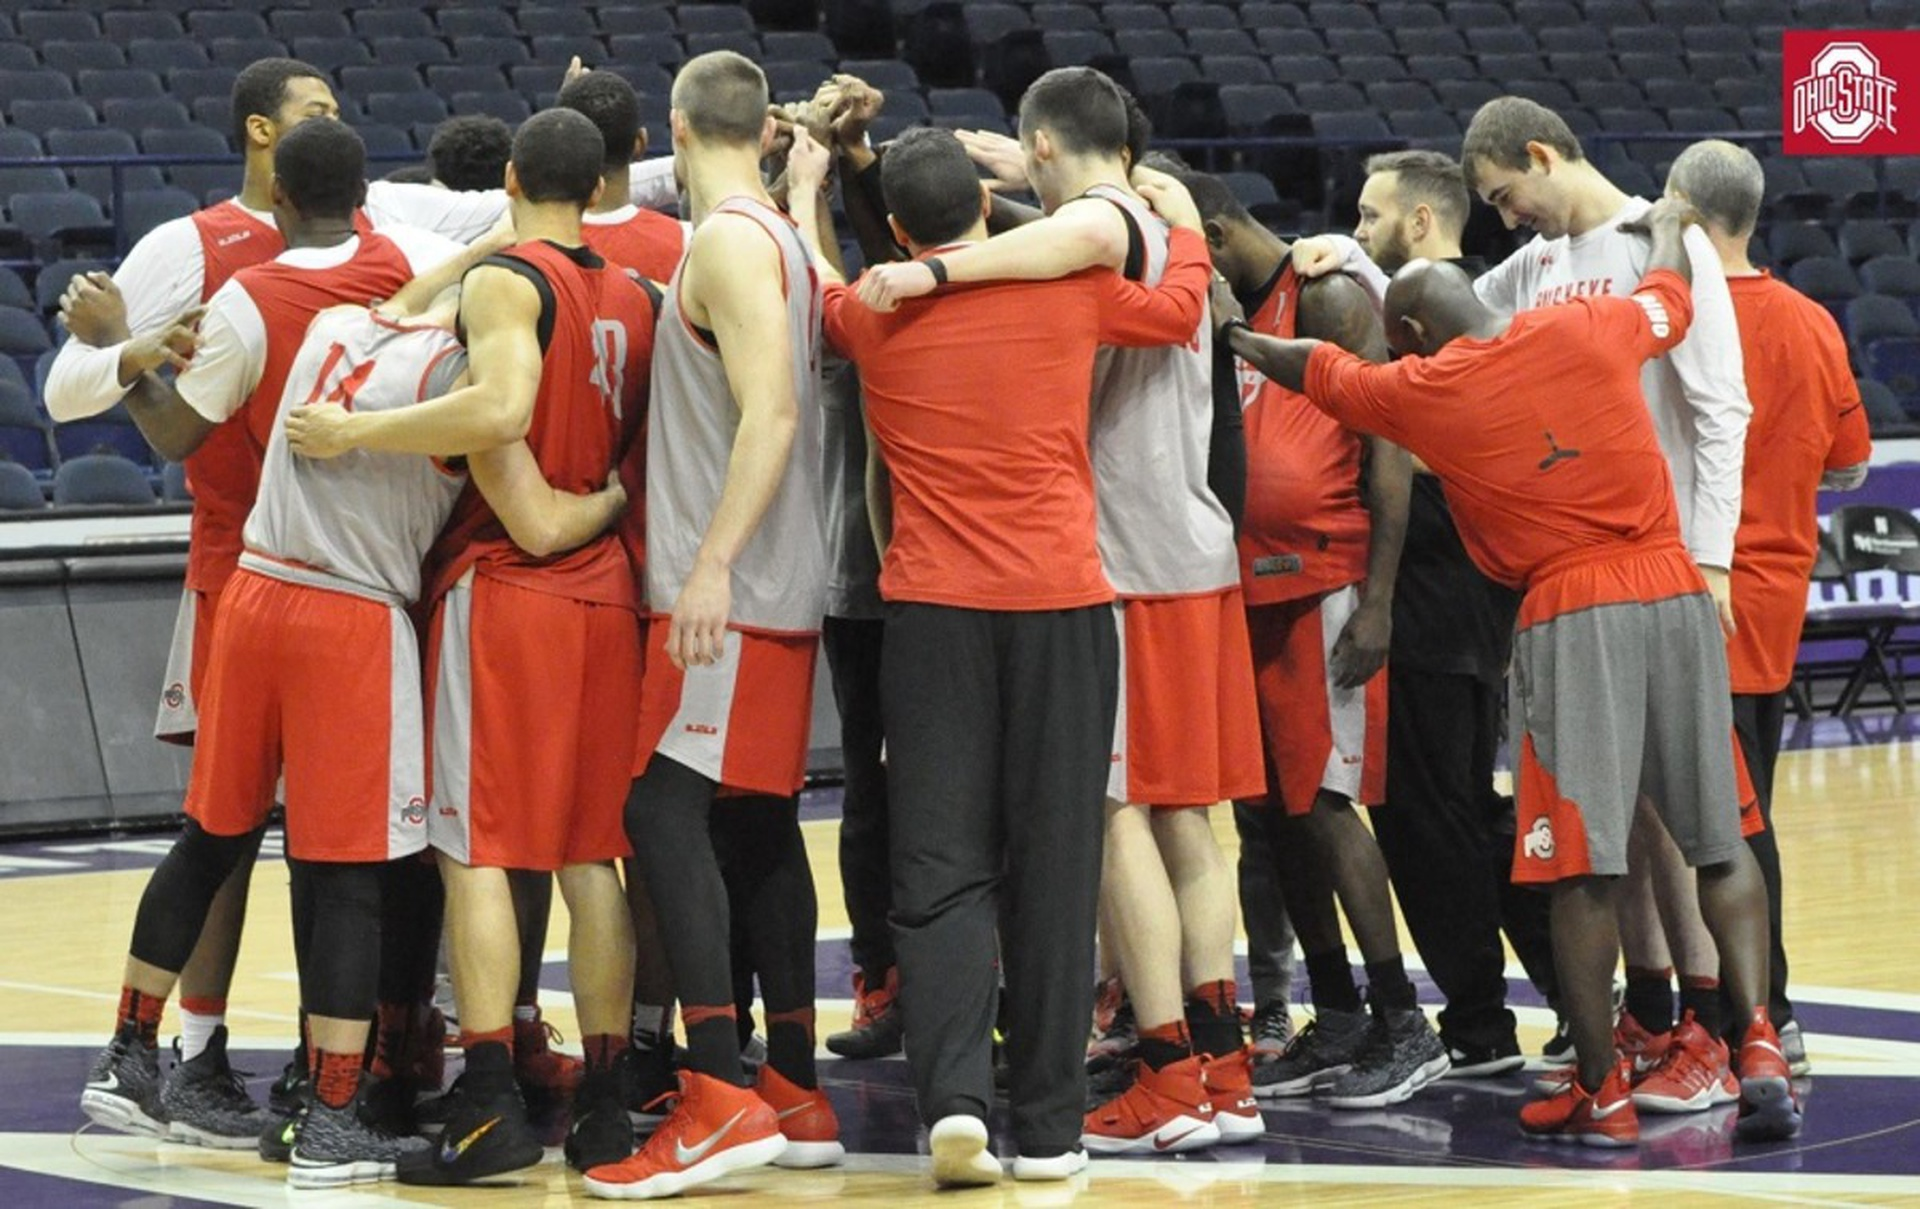 ohio state students may pay less for men's basketball tickets in 2018-19